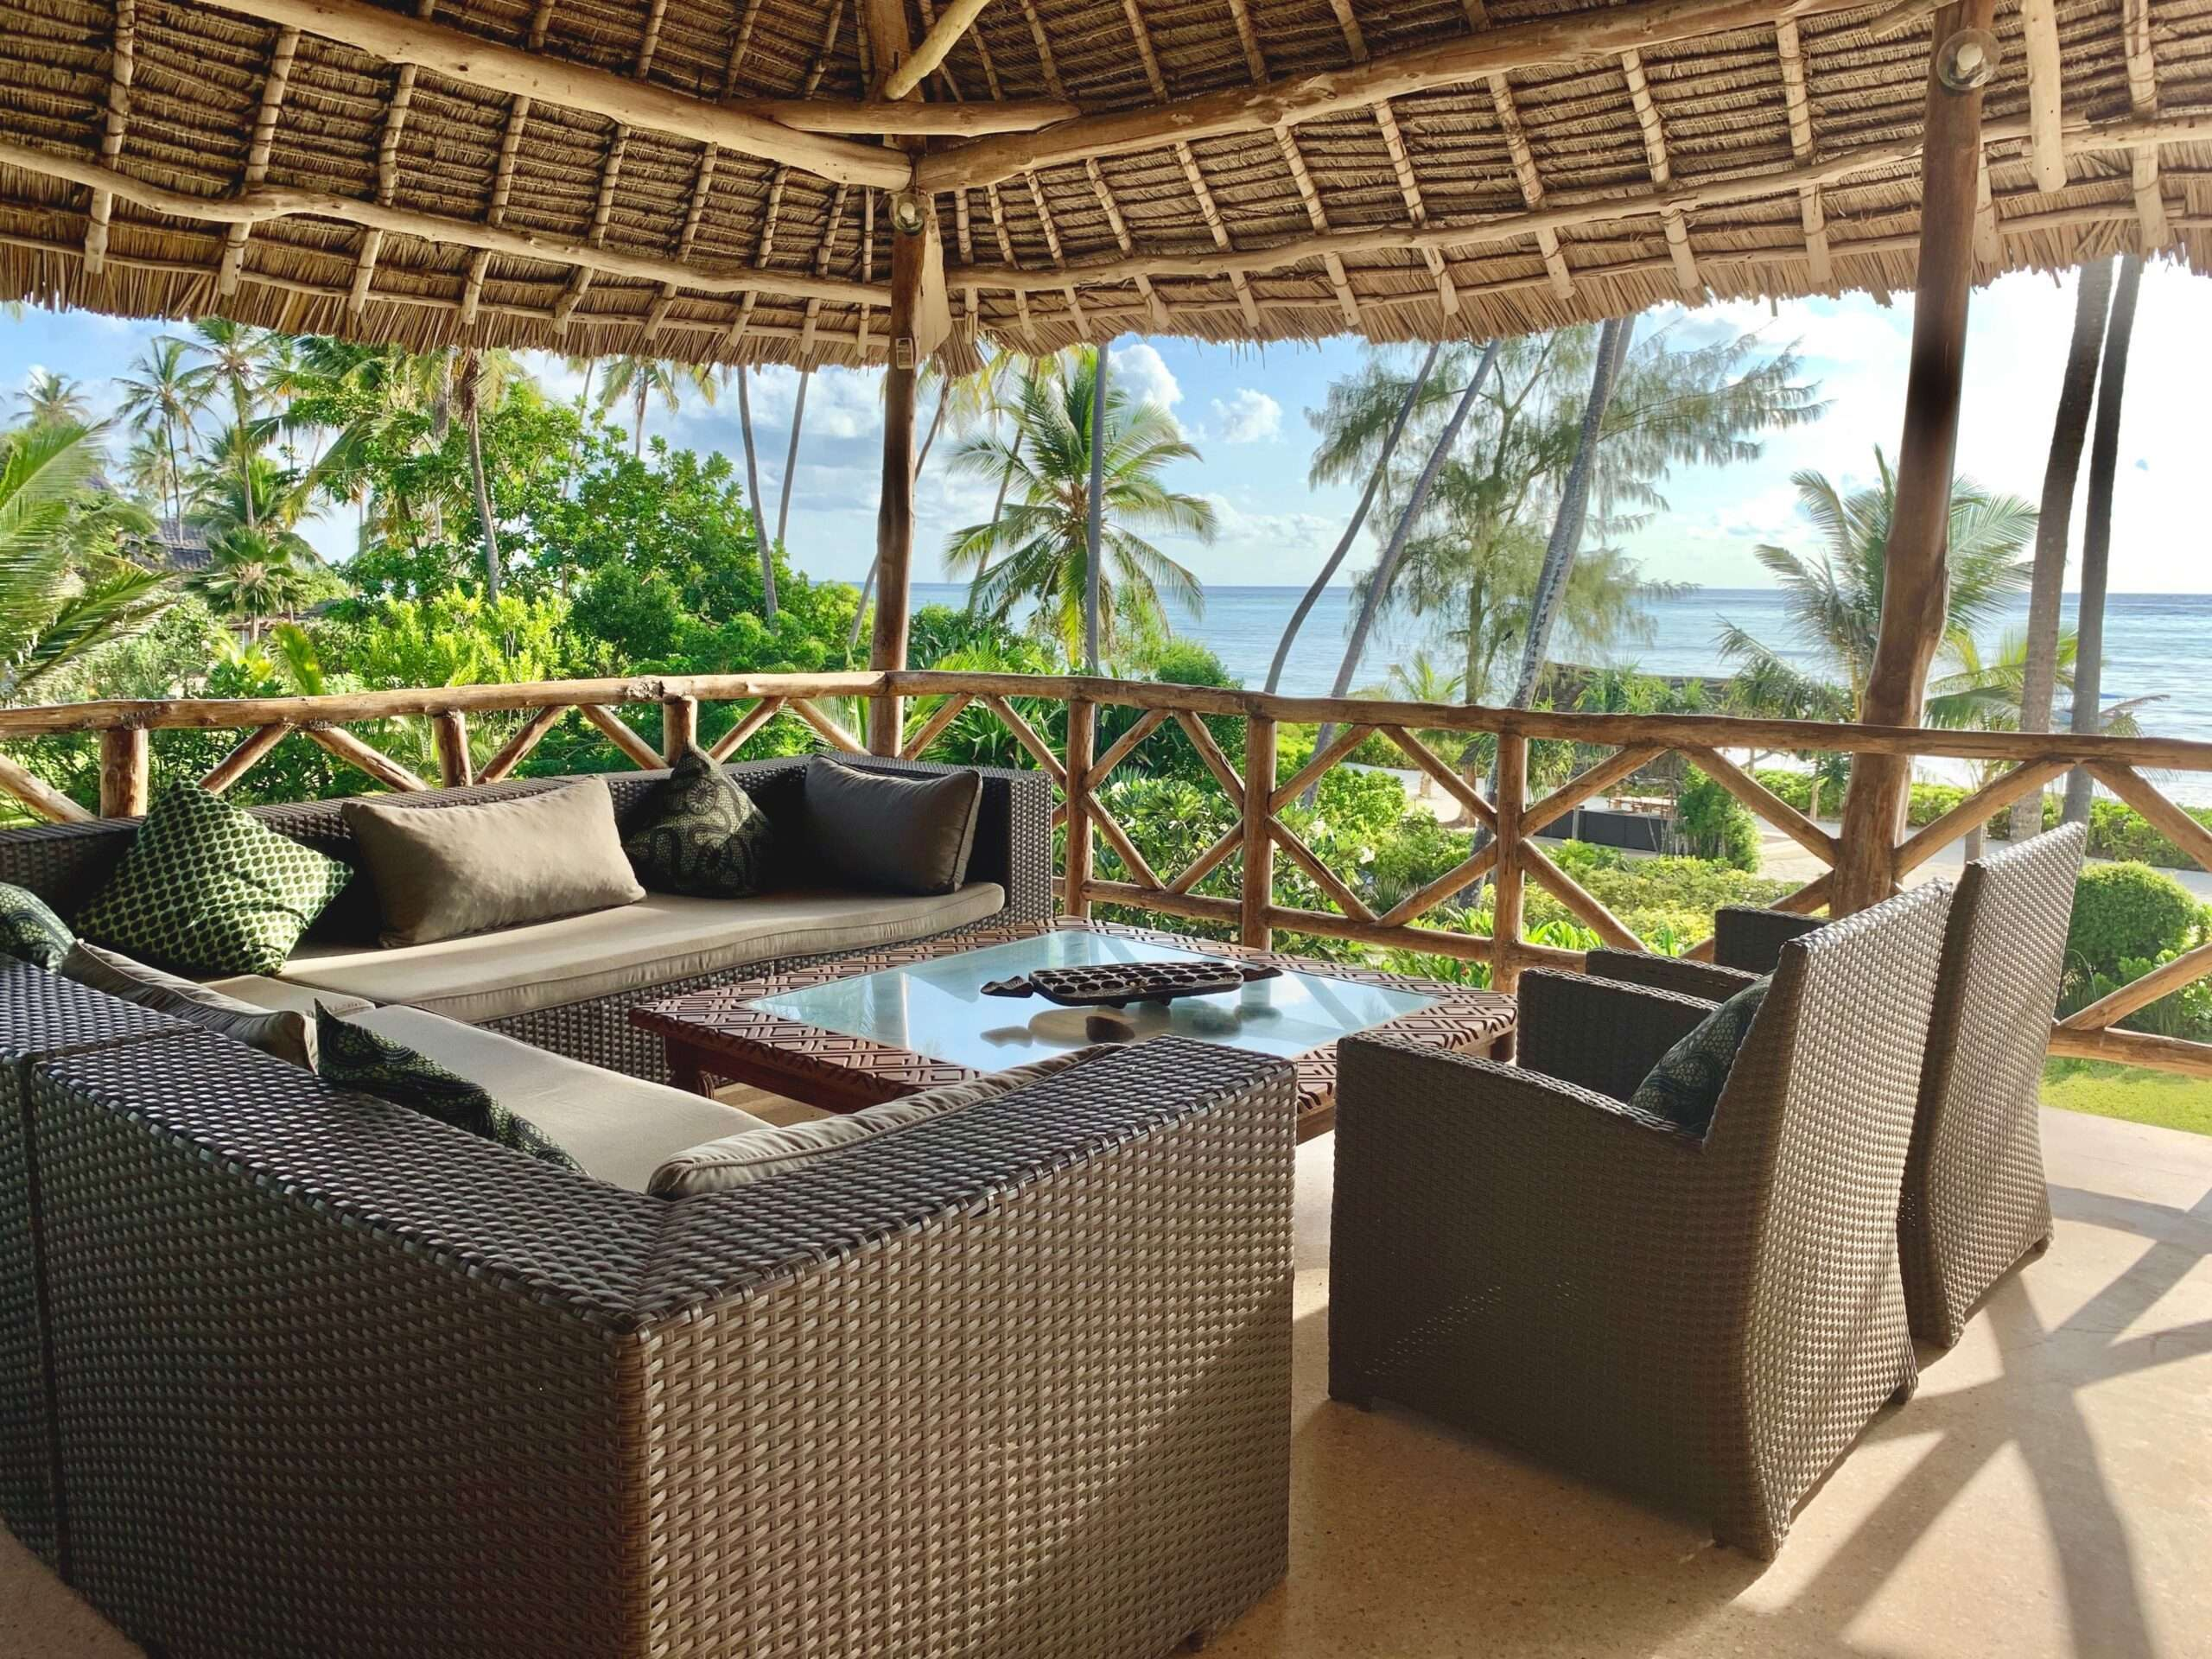 seating area under shade, overlooking the sea at Turquoise Beach Villa Zanzibar